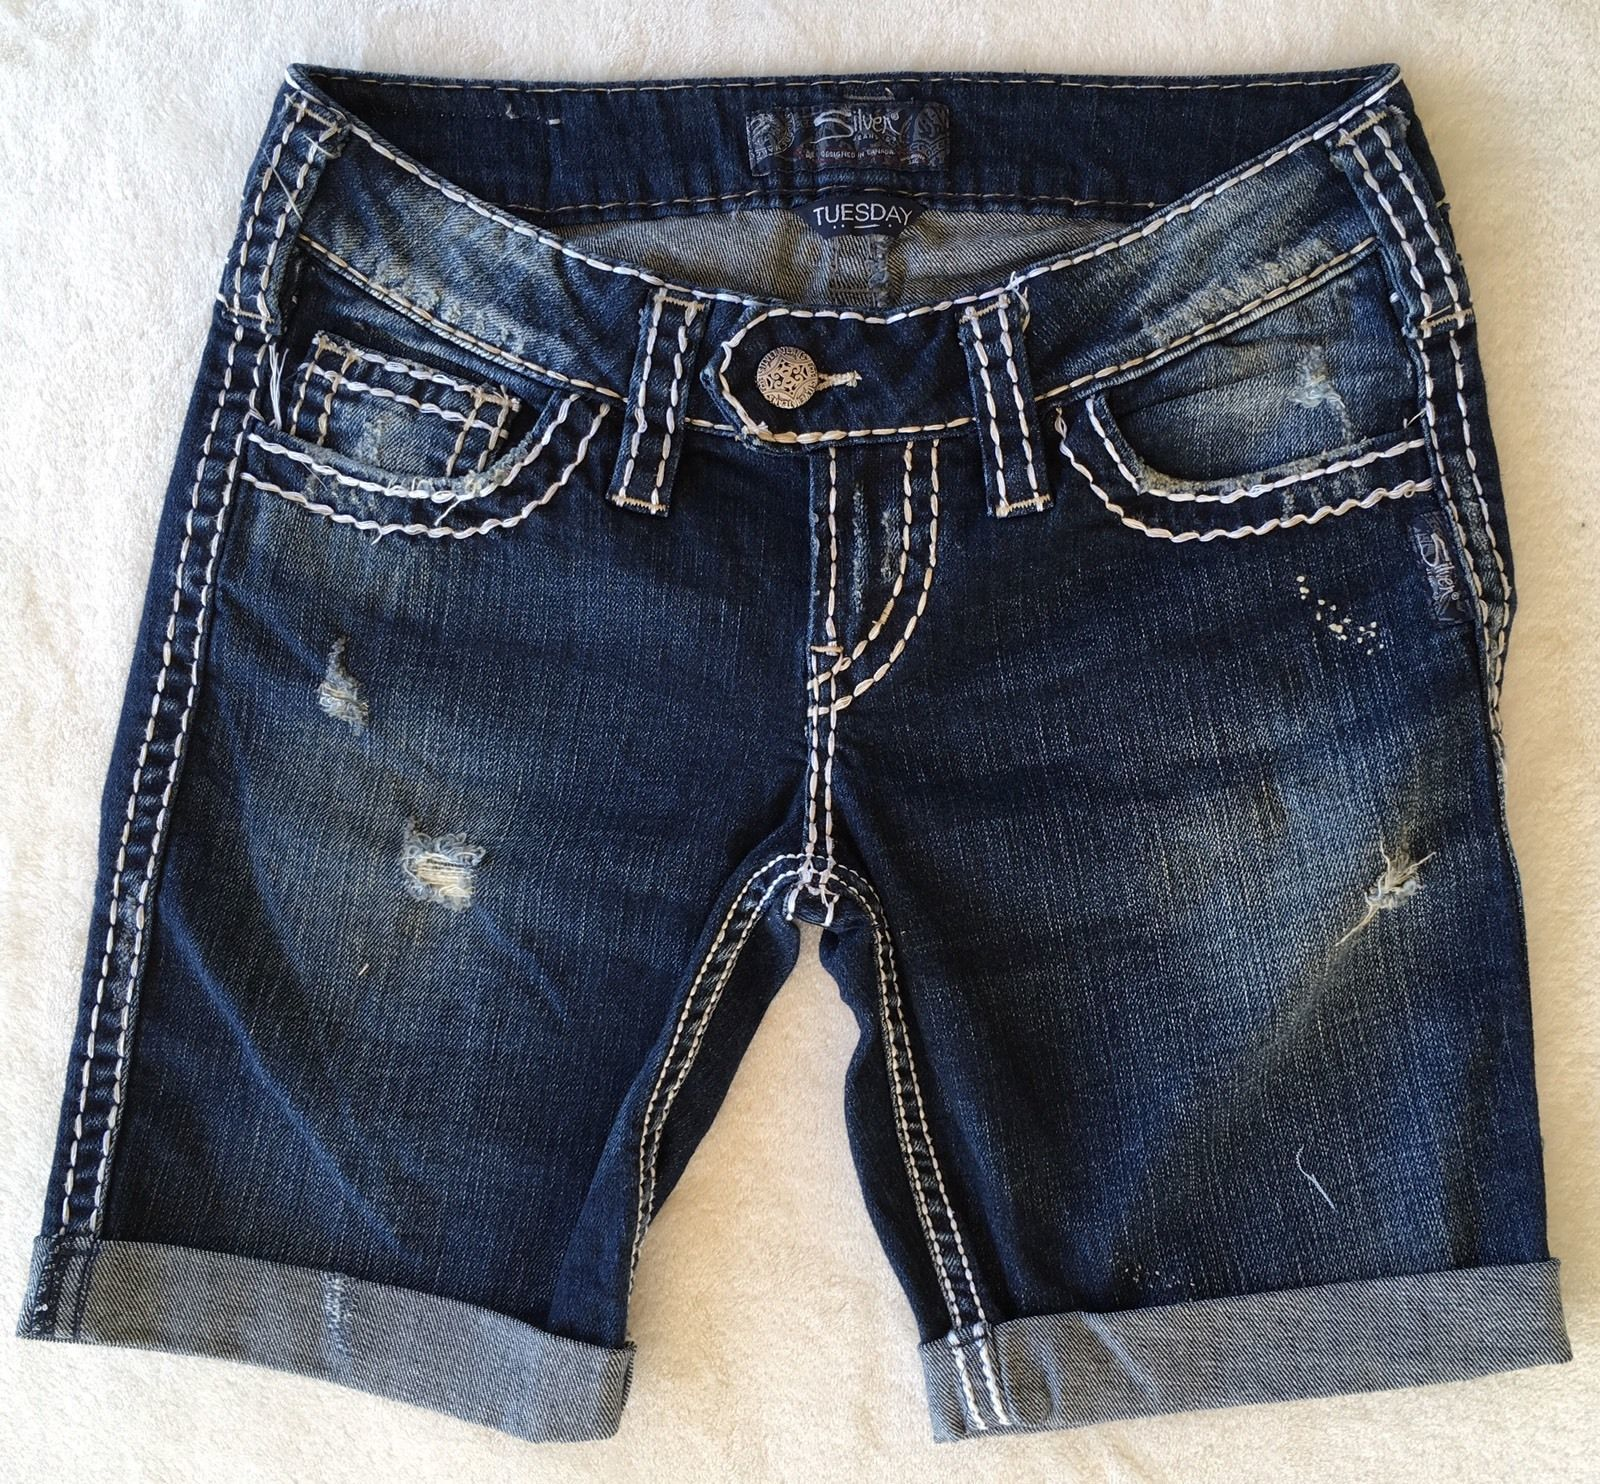 SILVER Jeans Sale Buckle Cheap Low Rise Tuesday Denim Jean Stretch Mid Shorts 26